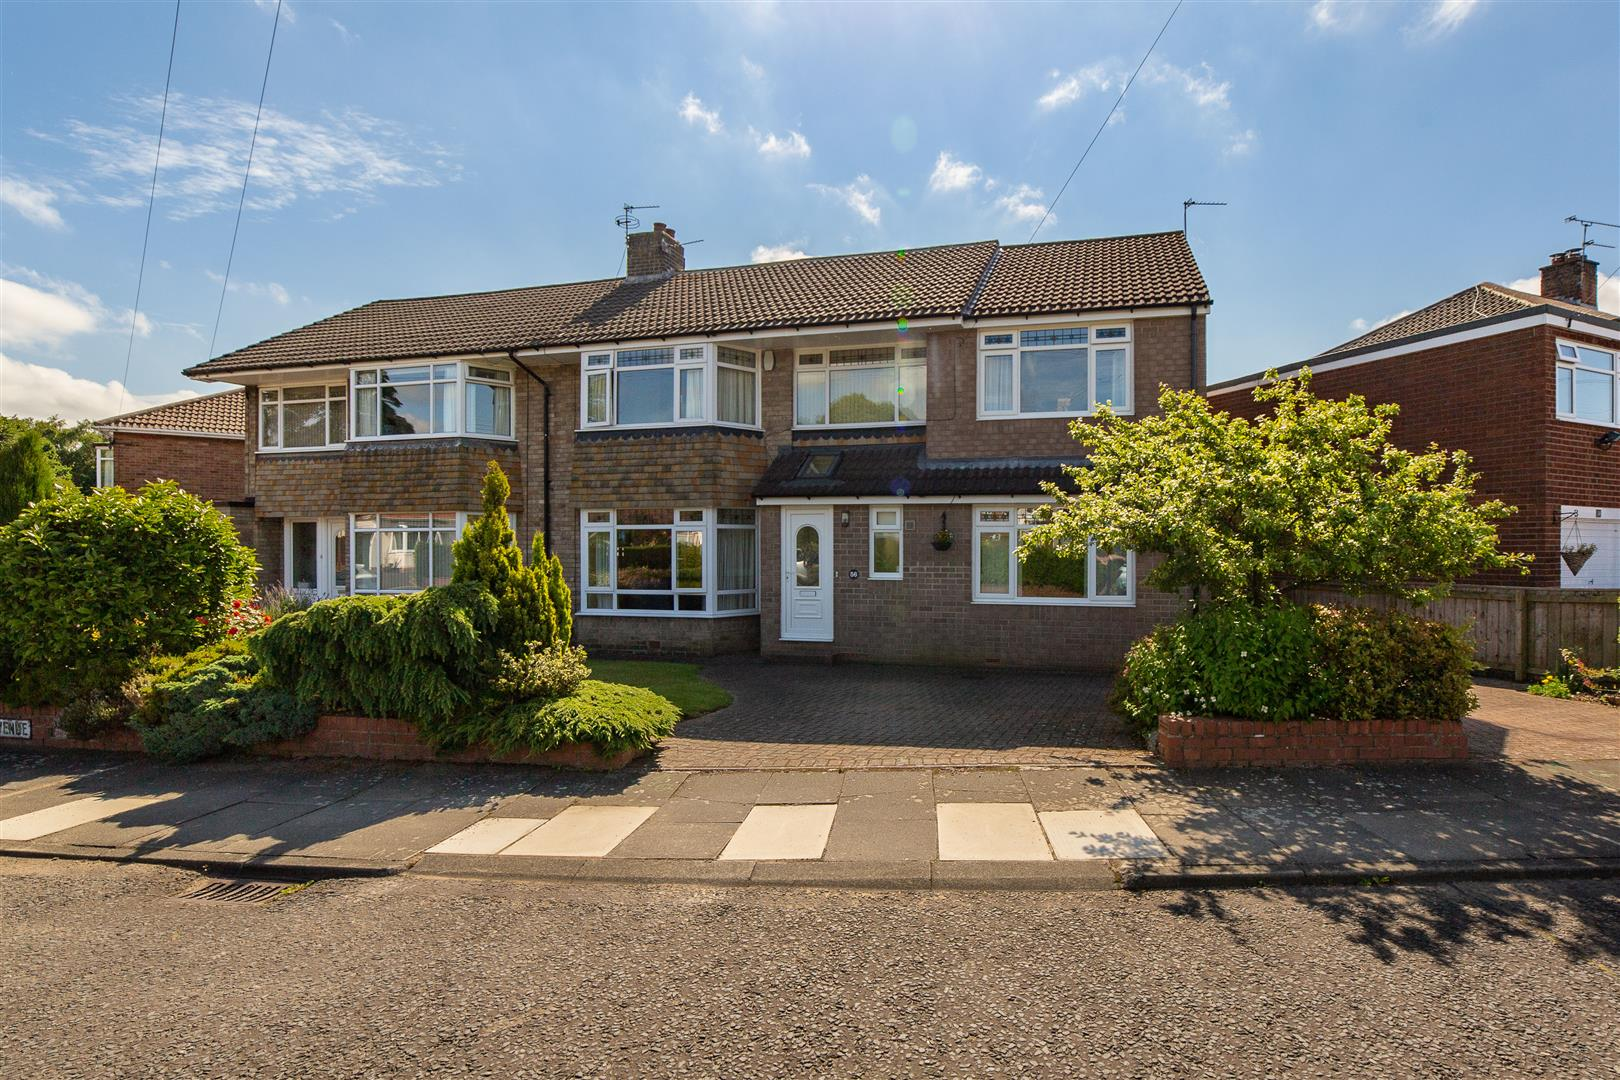 5 bed semi-detached house for sale in Easedale Avenue, Gosforth, NE3